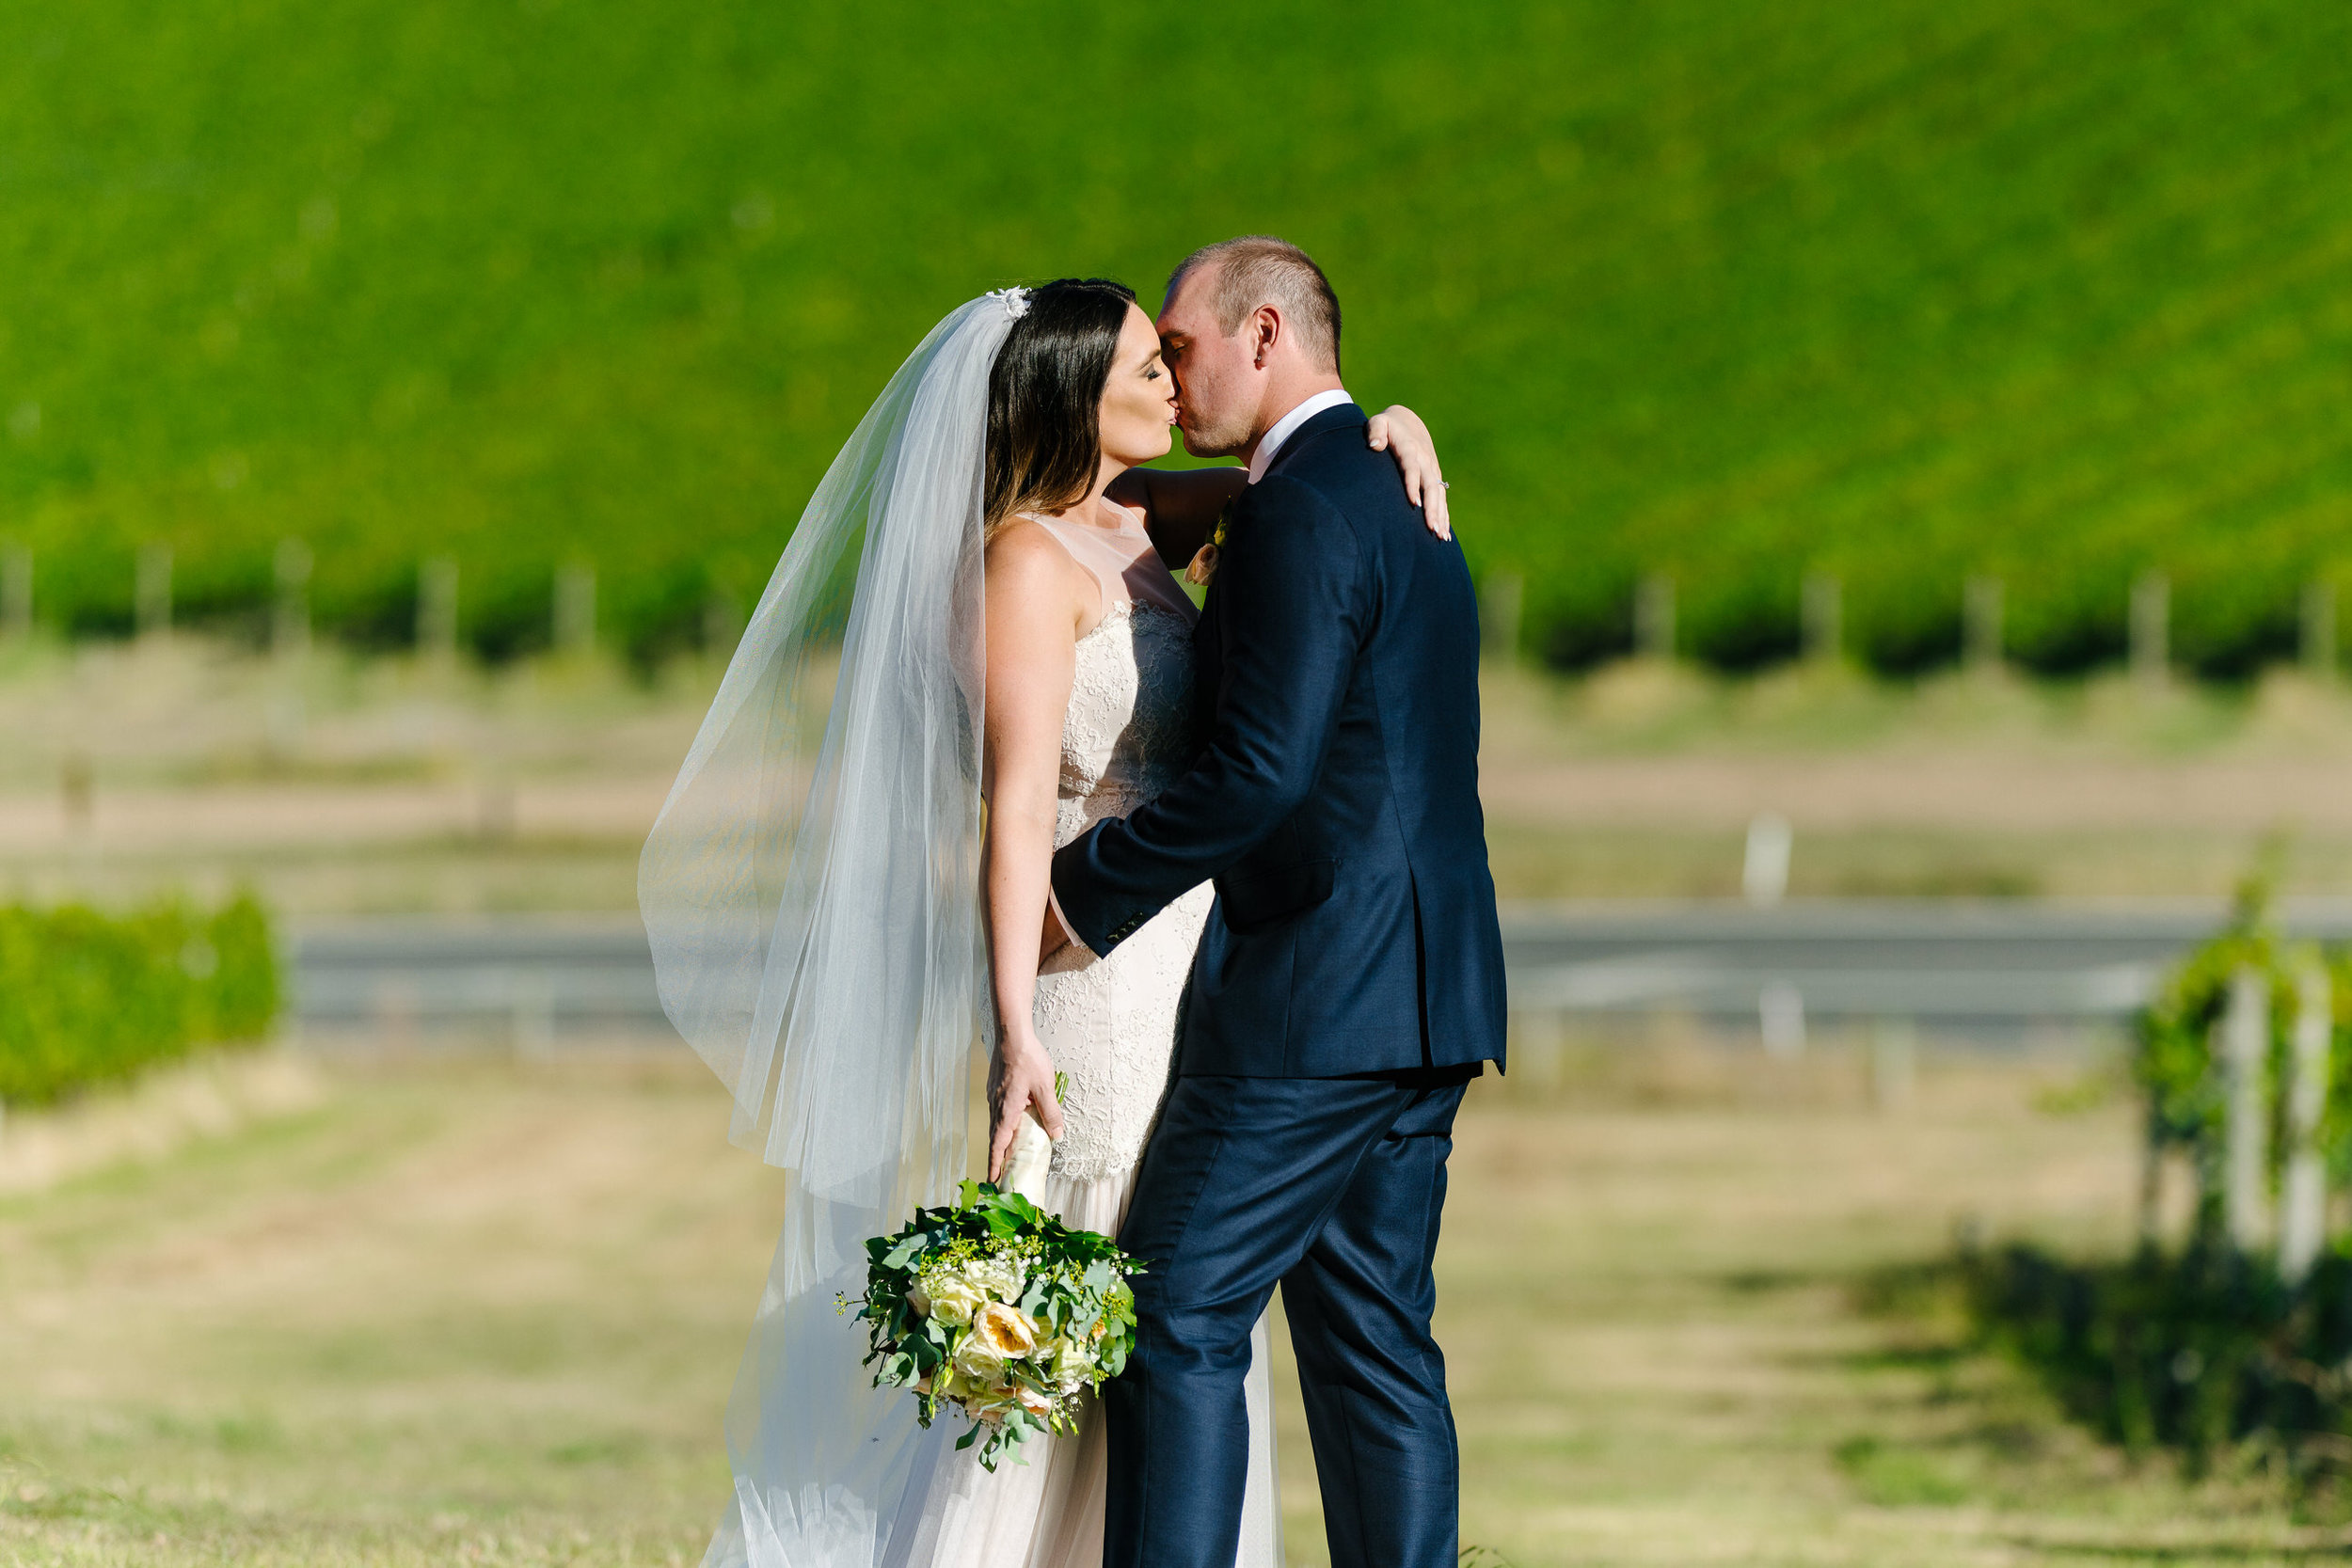 Justin_And_Jim_Photography_Balgownie_Winery_Wedding48.JPG